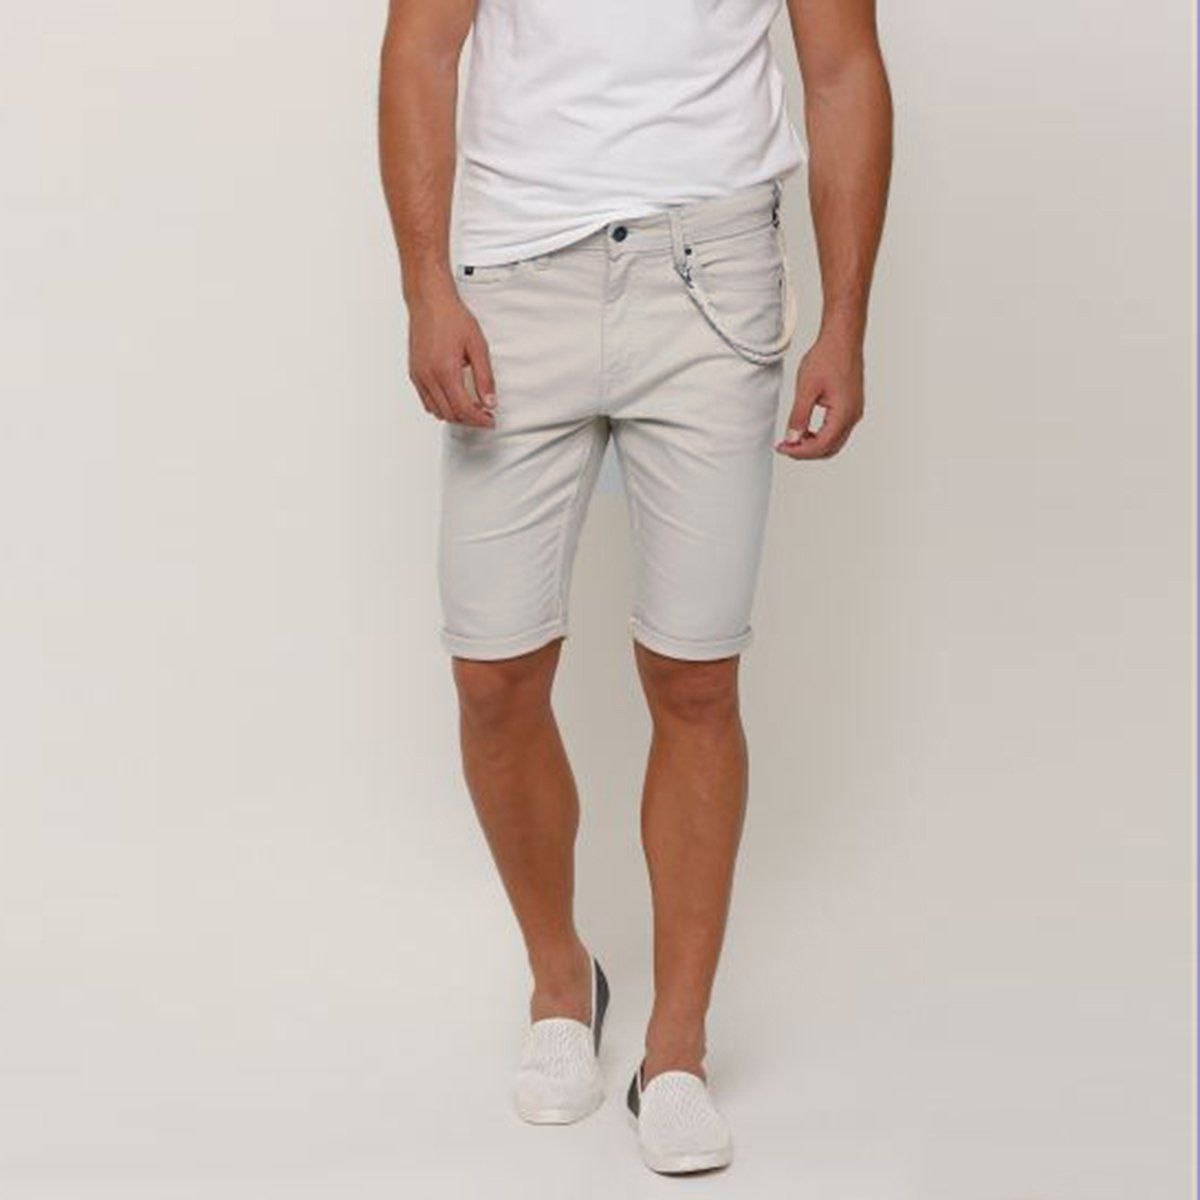 SPL-pocket detail cotton shorts with button closure